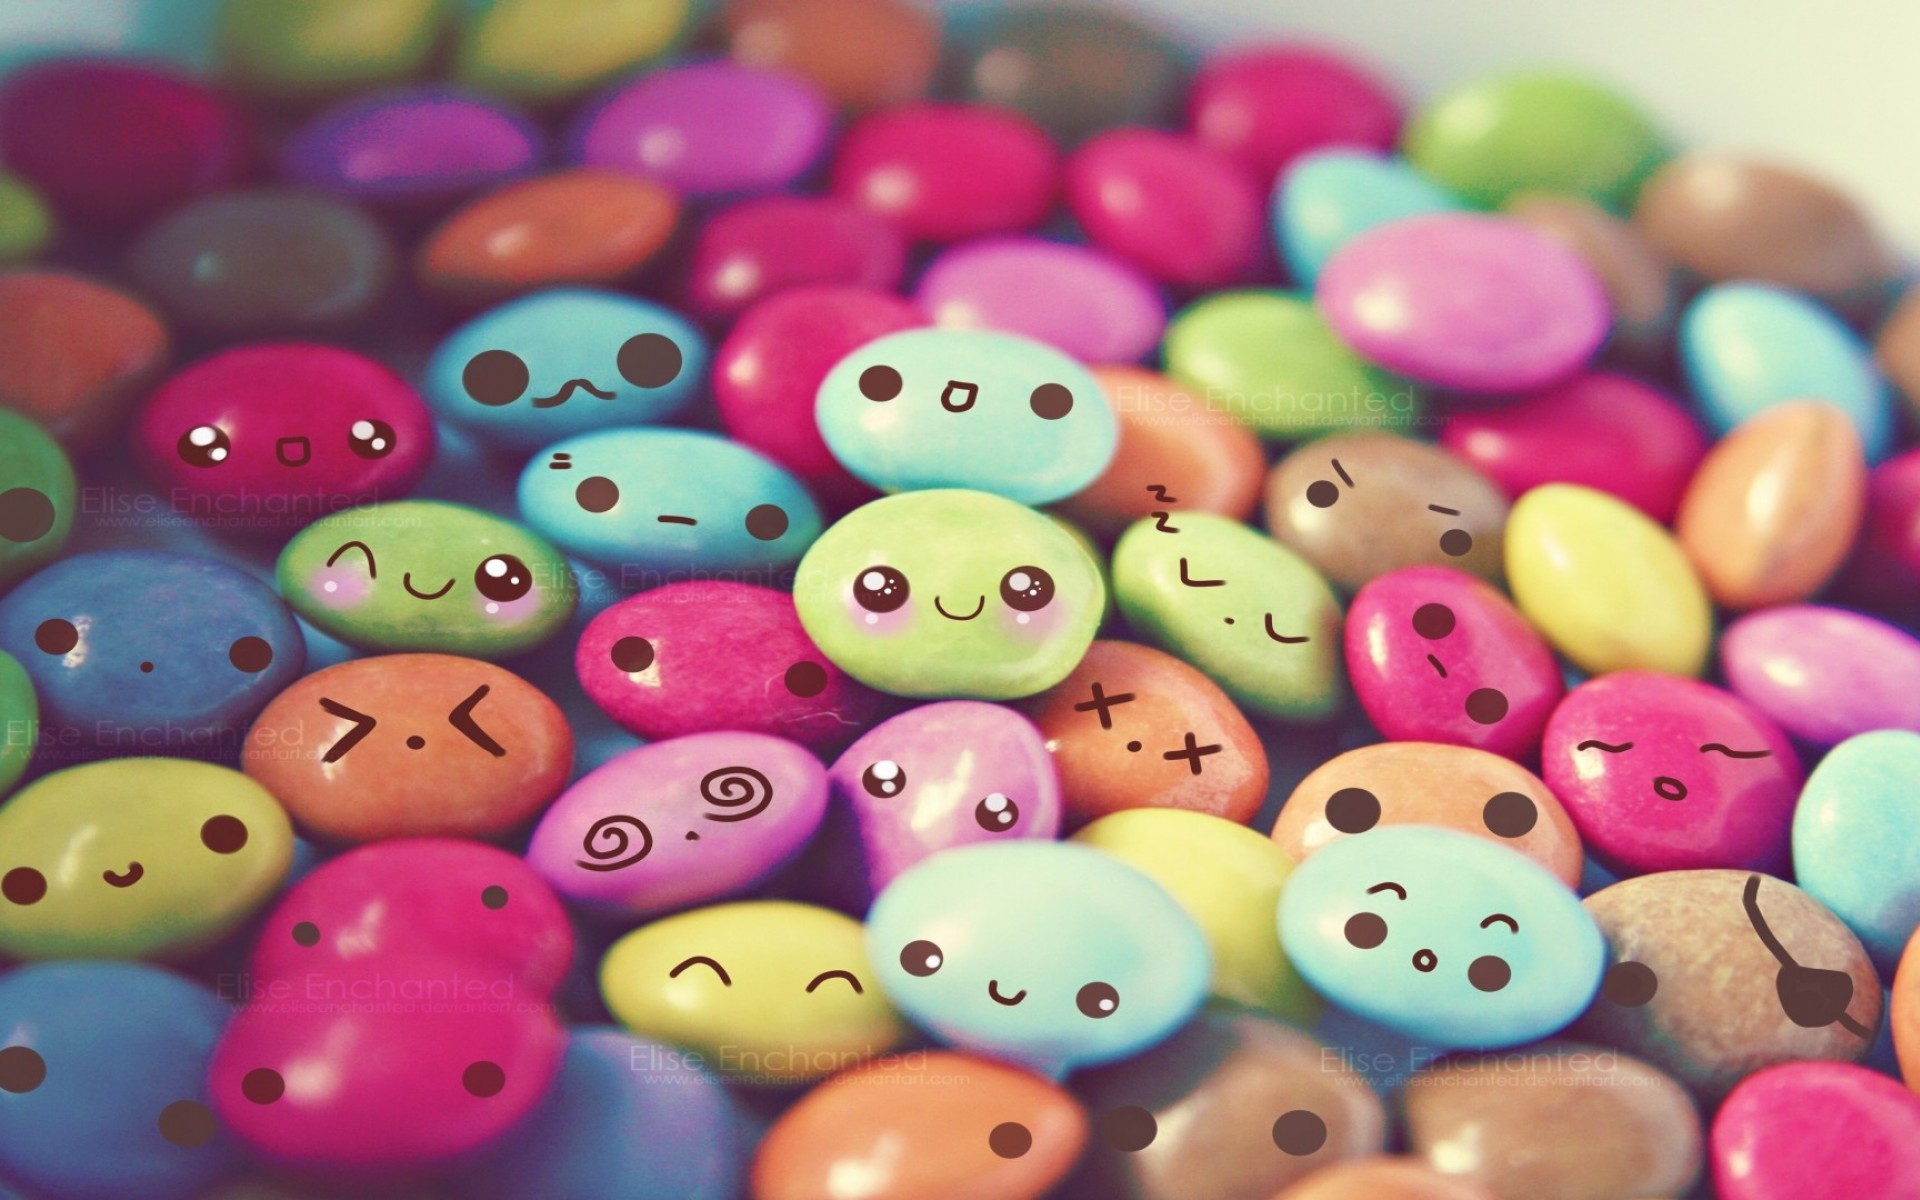 Cute Tumblr Backgrounds Wallpaper / Hd Wallpapers